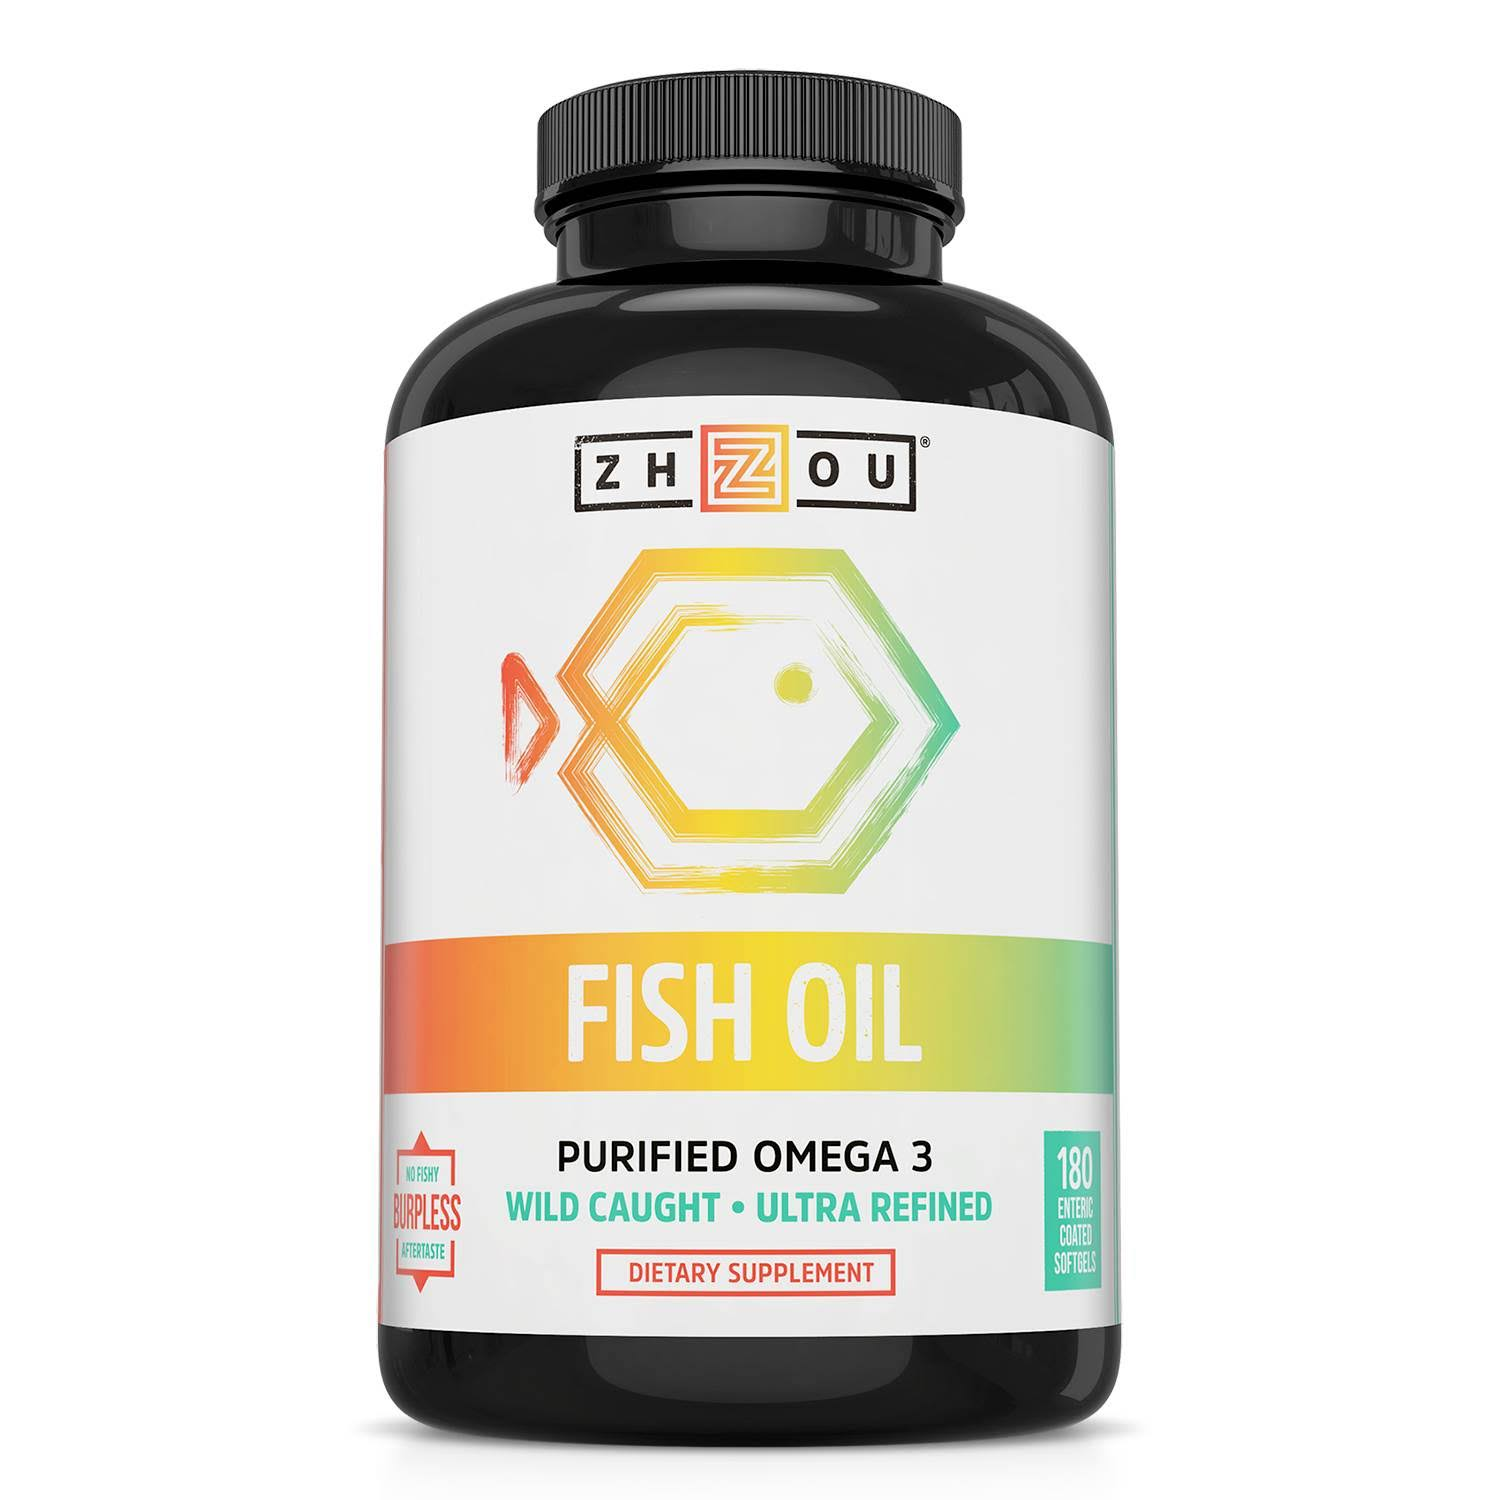 Zhou Nutrition - Fish Oil - 180 Softgels